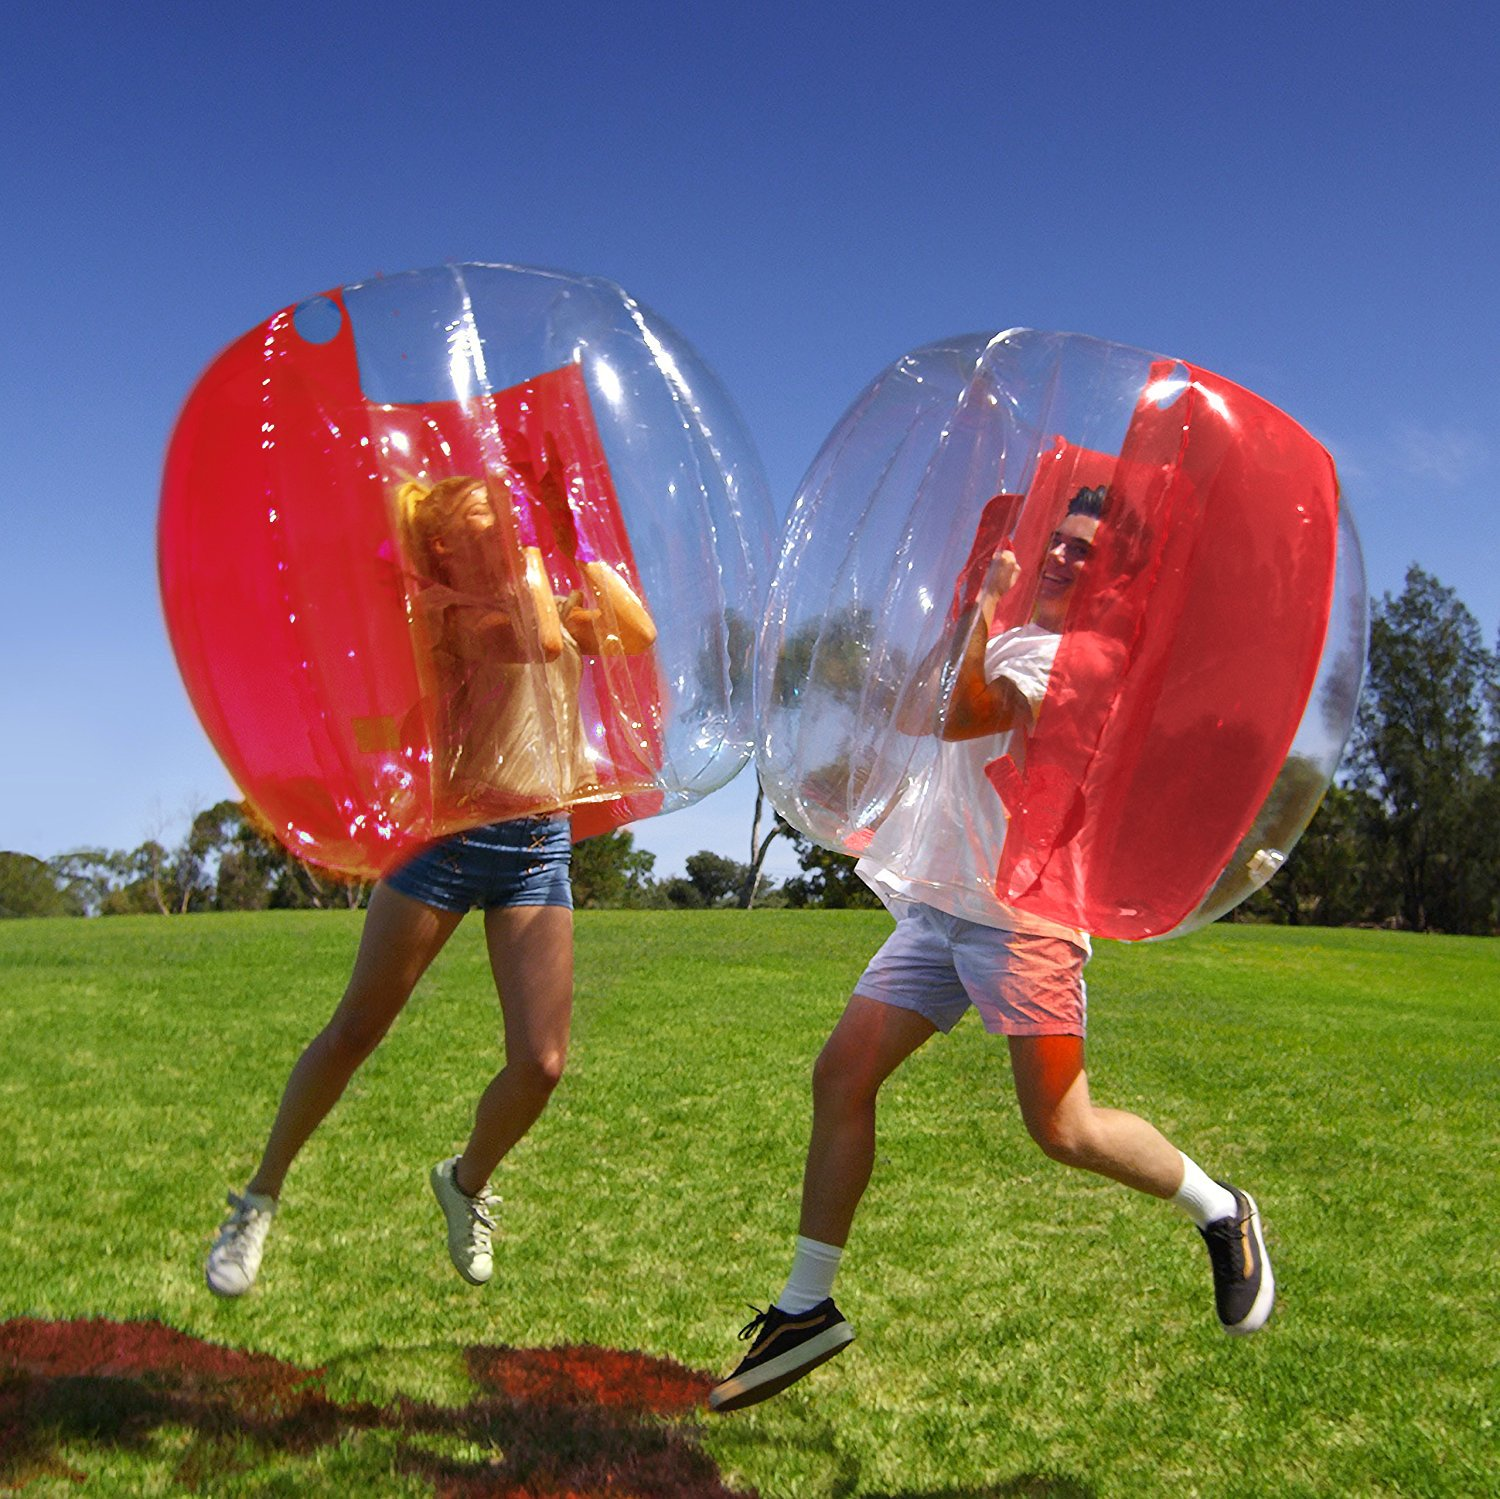 Inflatable 4' Wearable Buddy Bumper Zorb Balls Heavy Duty Durable PVC Viny Bubble Soccer Outdoor Game (One pack, Red)